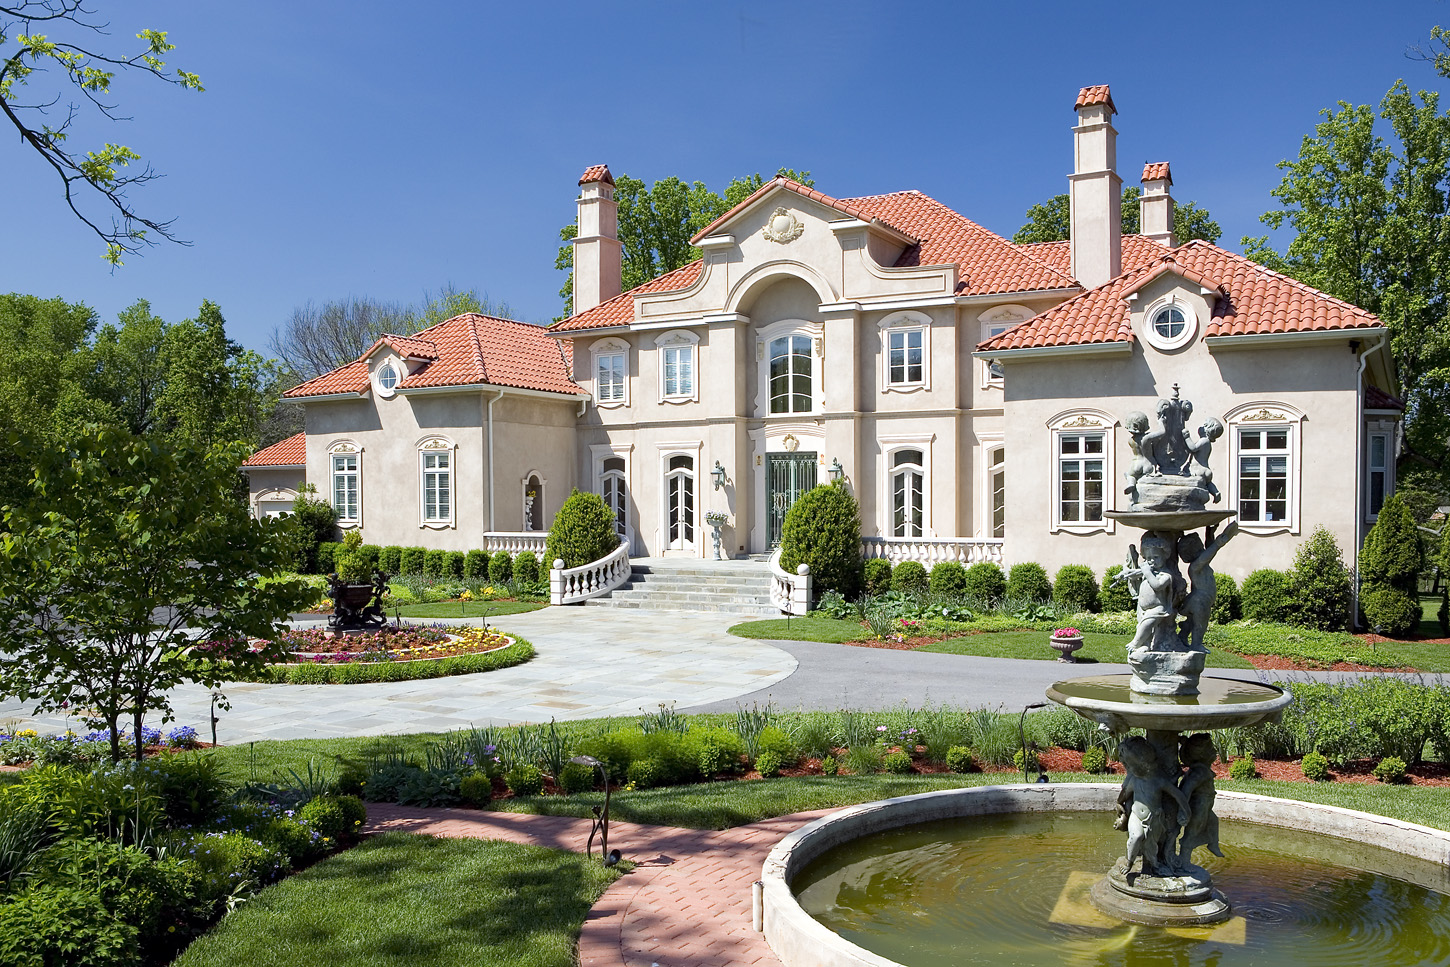 Entrance of a mansion in Potomac, Maryland with fountains and circular driveway